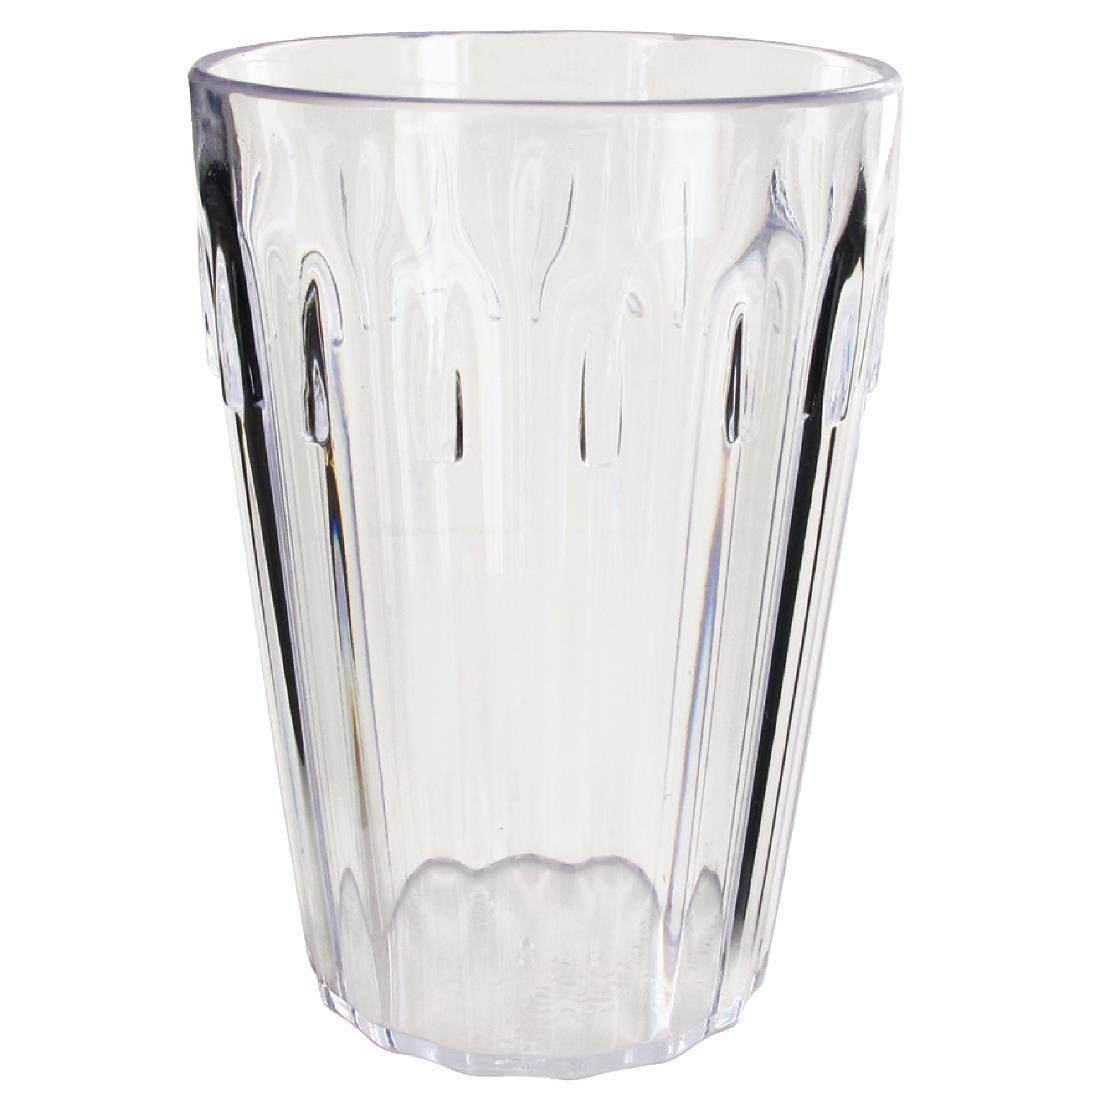 Kristallon Polycarbonate Tumblers 142ml - Case 12 - DP239